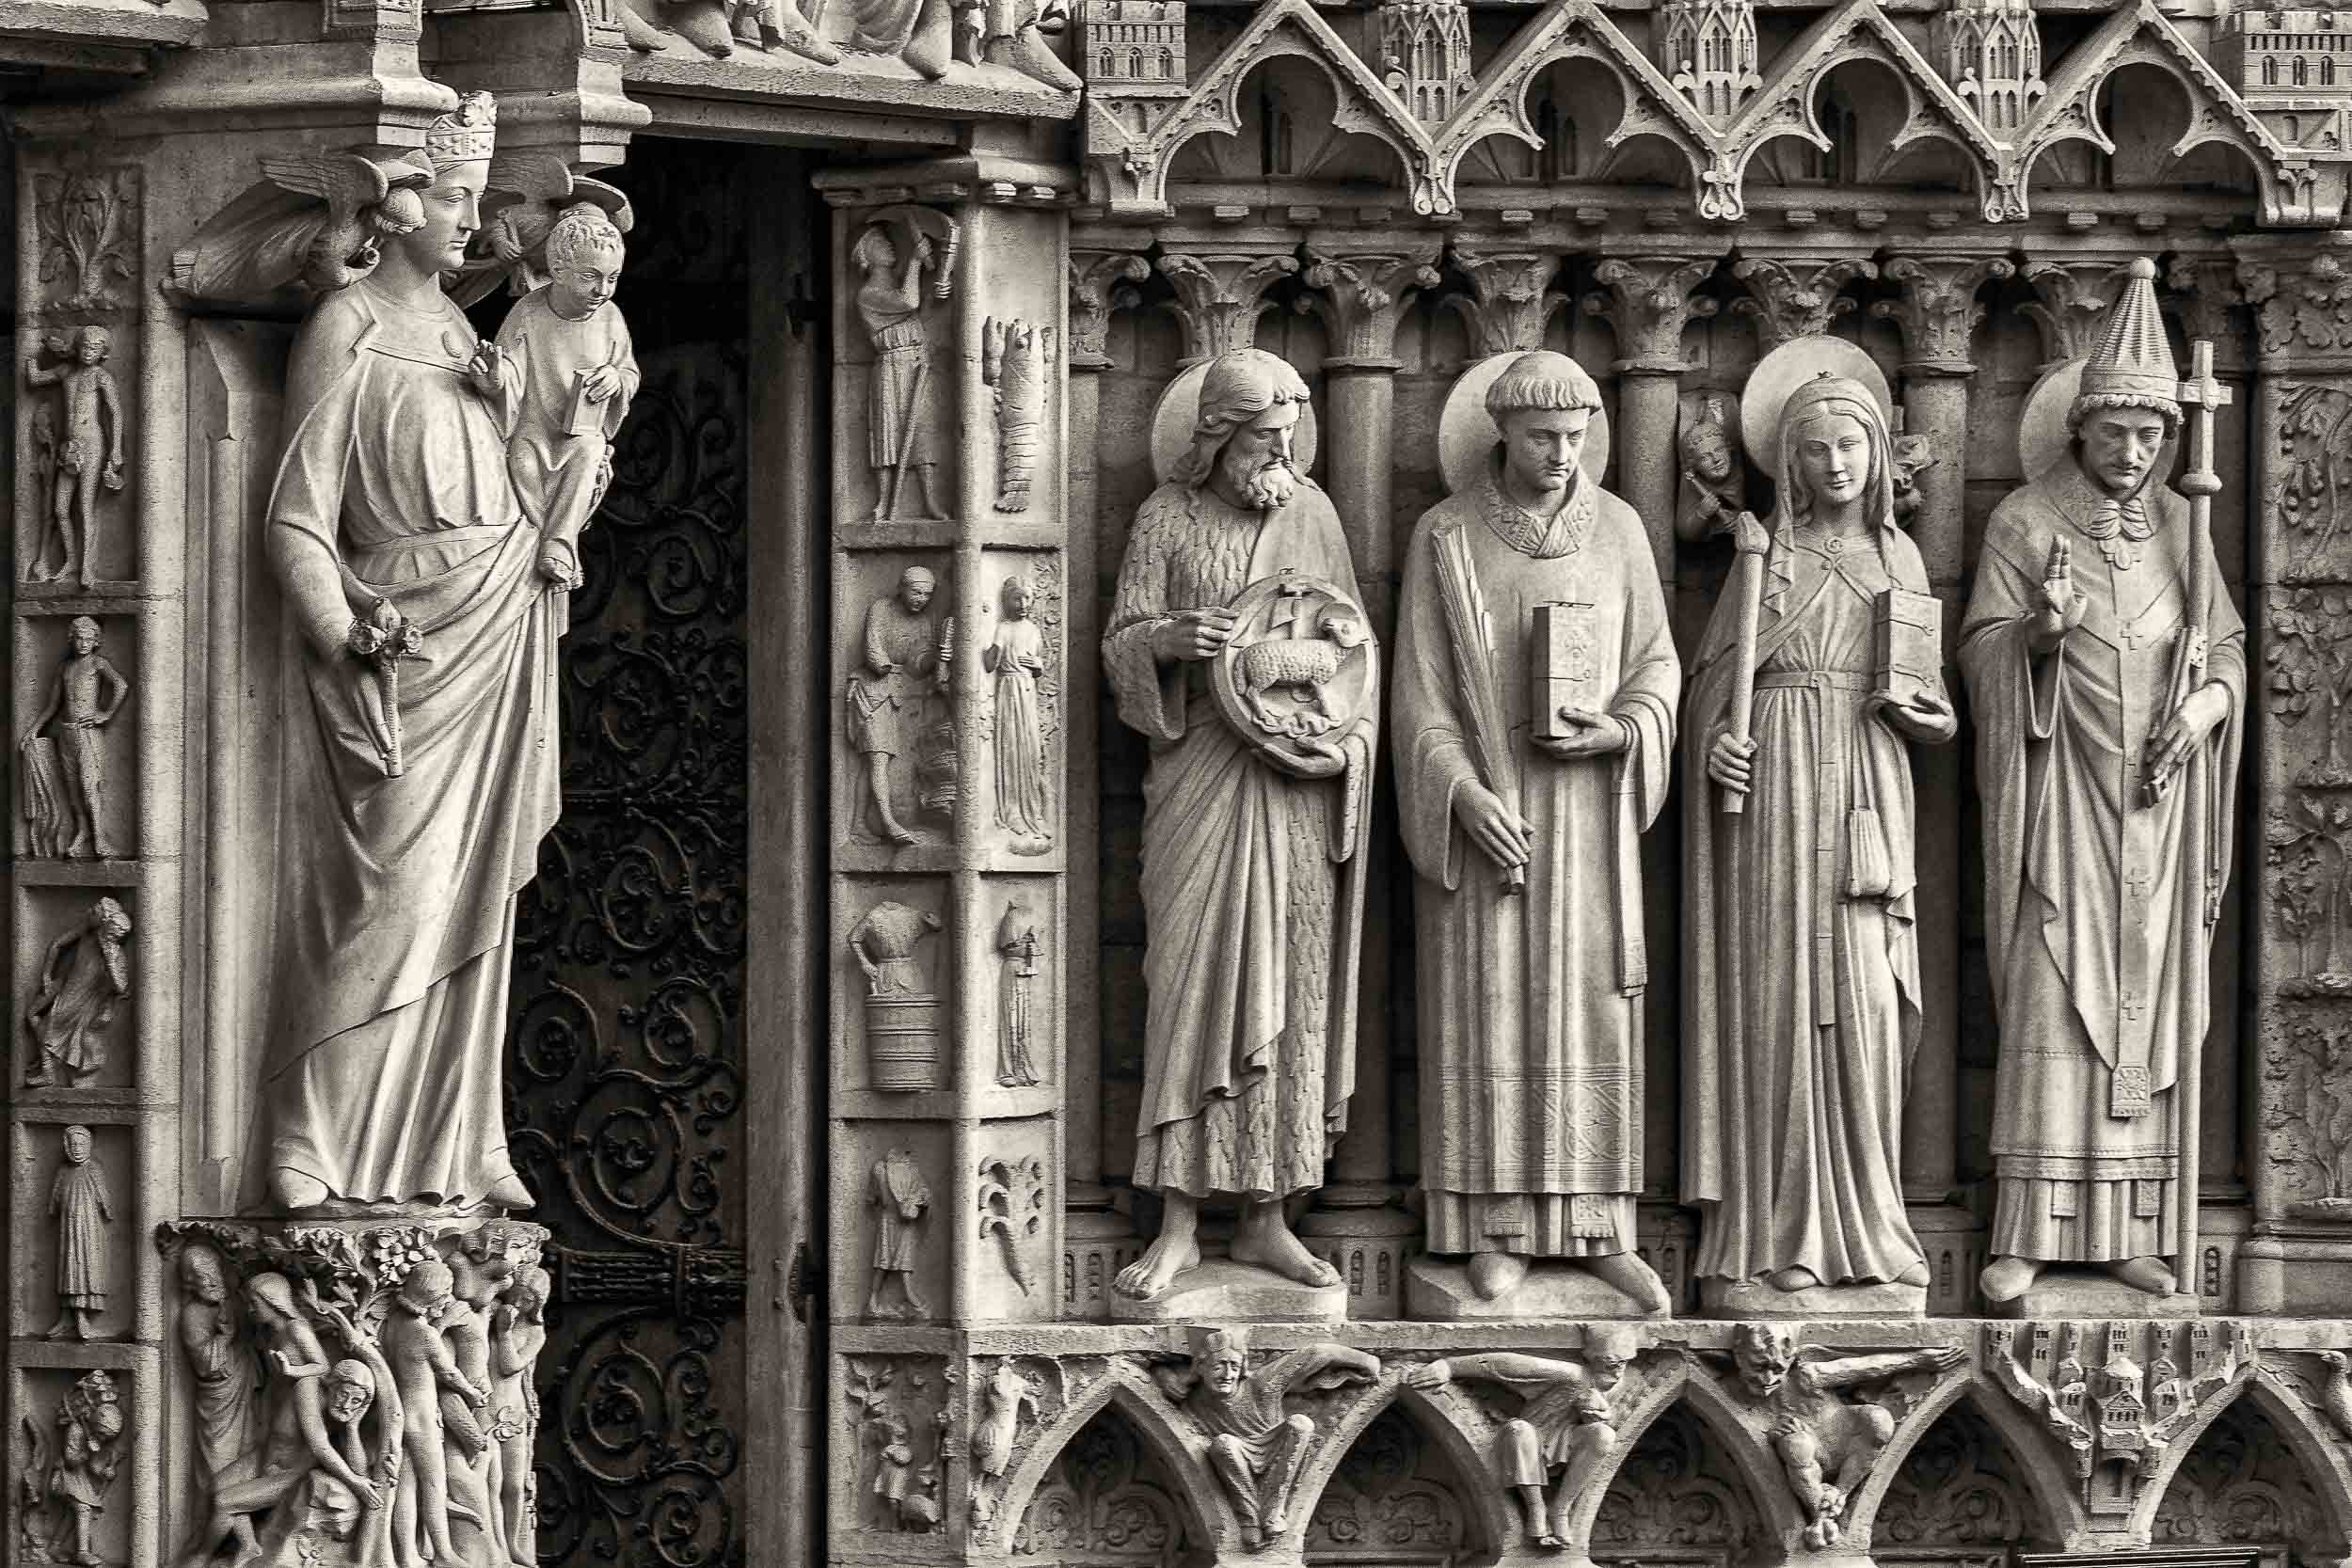 Beautifully expressive    Christian statues    overlooking visitors entering    Notre Dame Cathedral    in Paris, France.